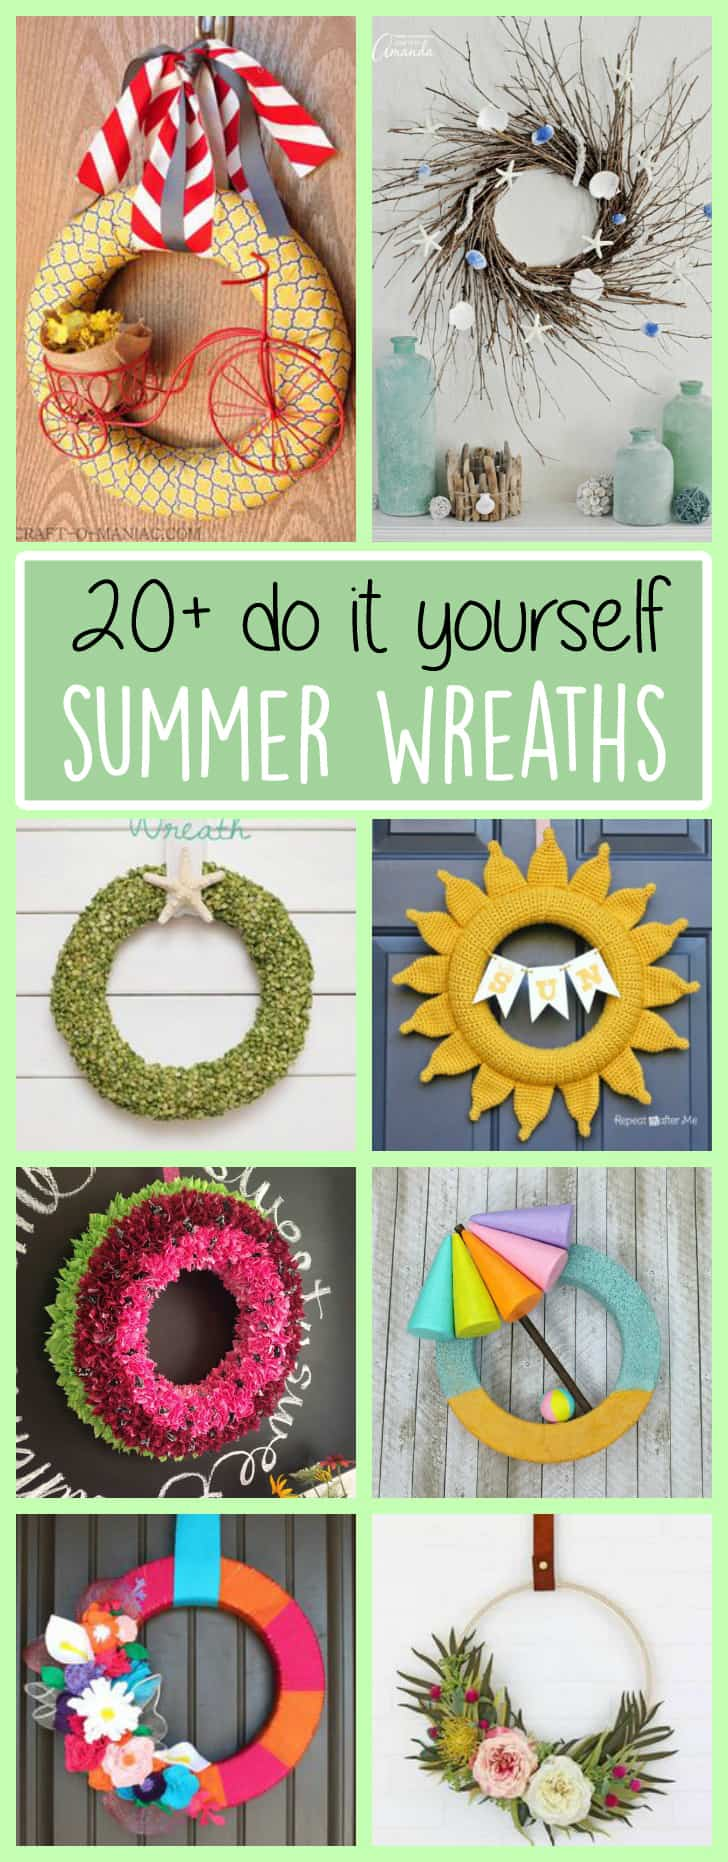 Diy summer wreaths 20 beautiful statement wreaths for Summer craft ideas for adults